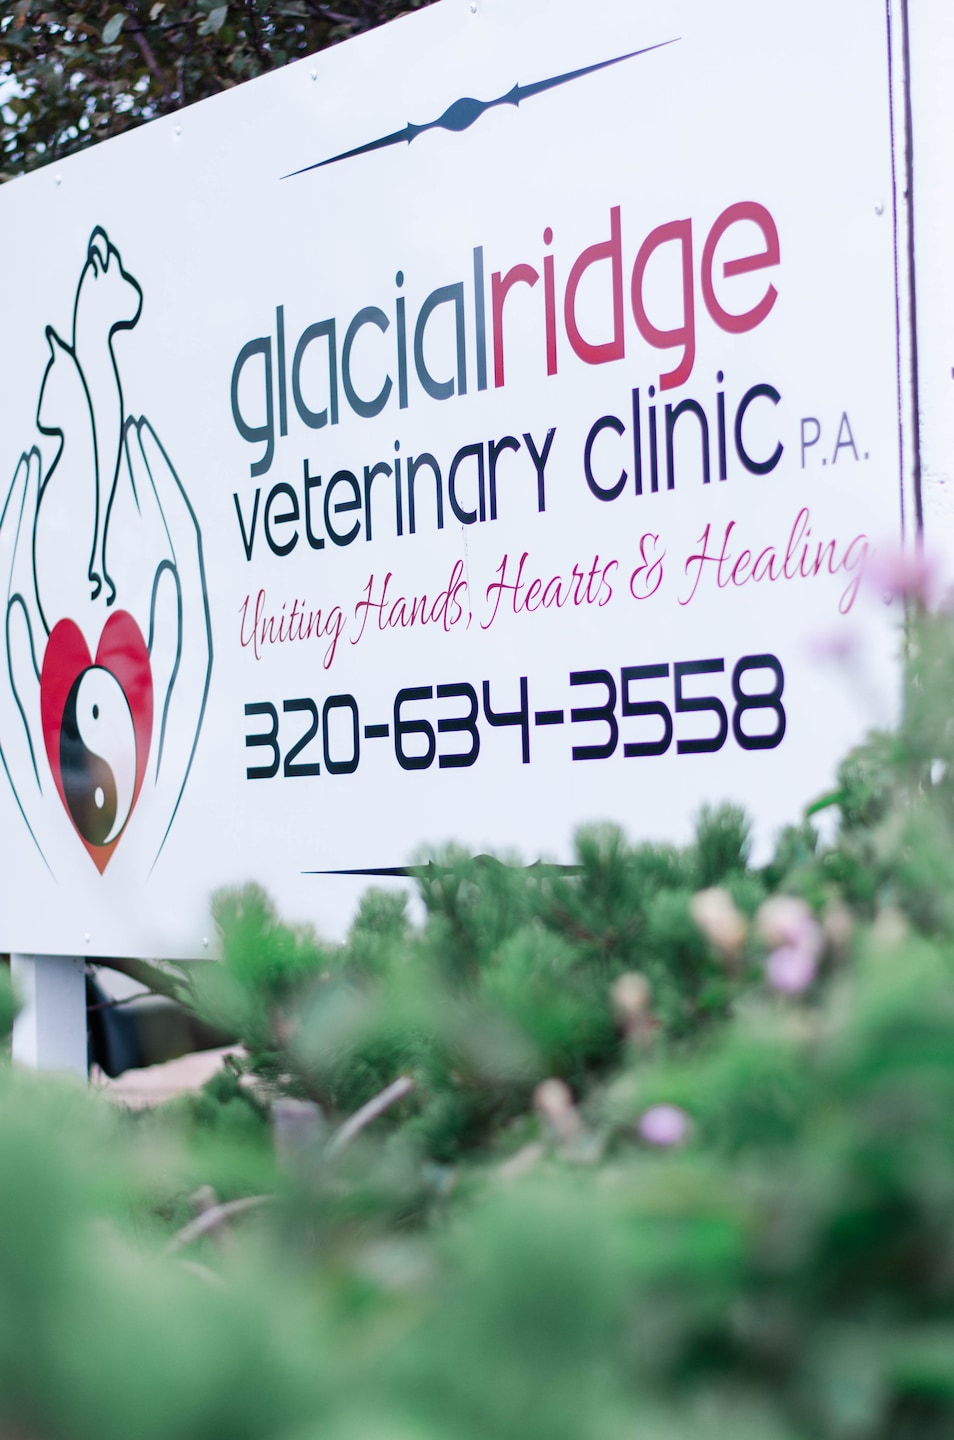 Glacial Ridge Veterinary Clinic, P.A.